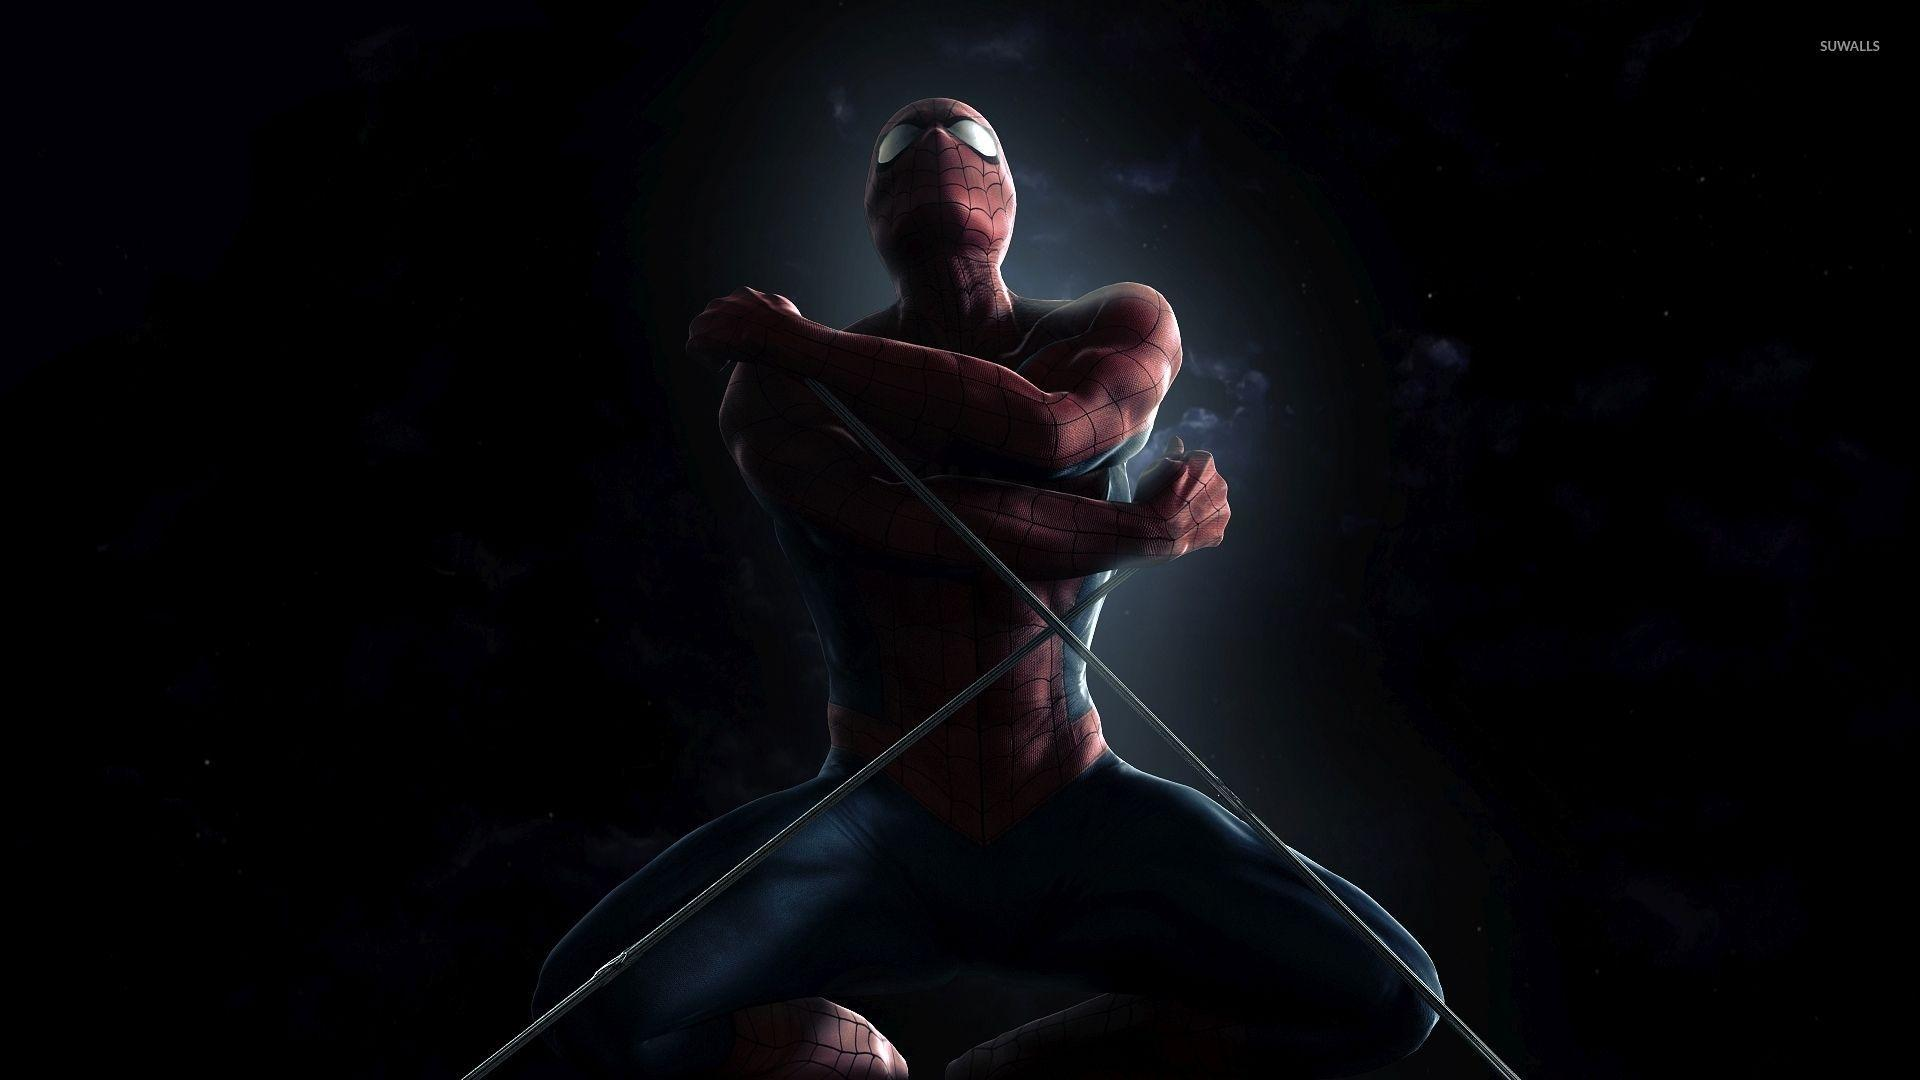 Spider-Man in The Amazing Spider-Man 2 wallpaper - Movie ...